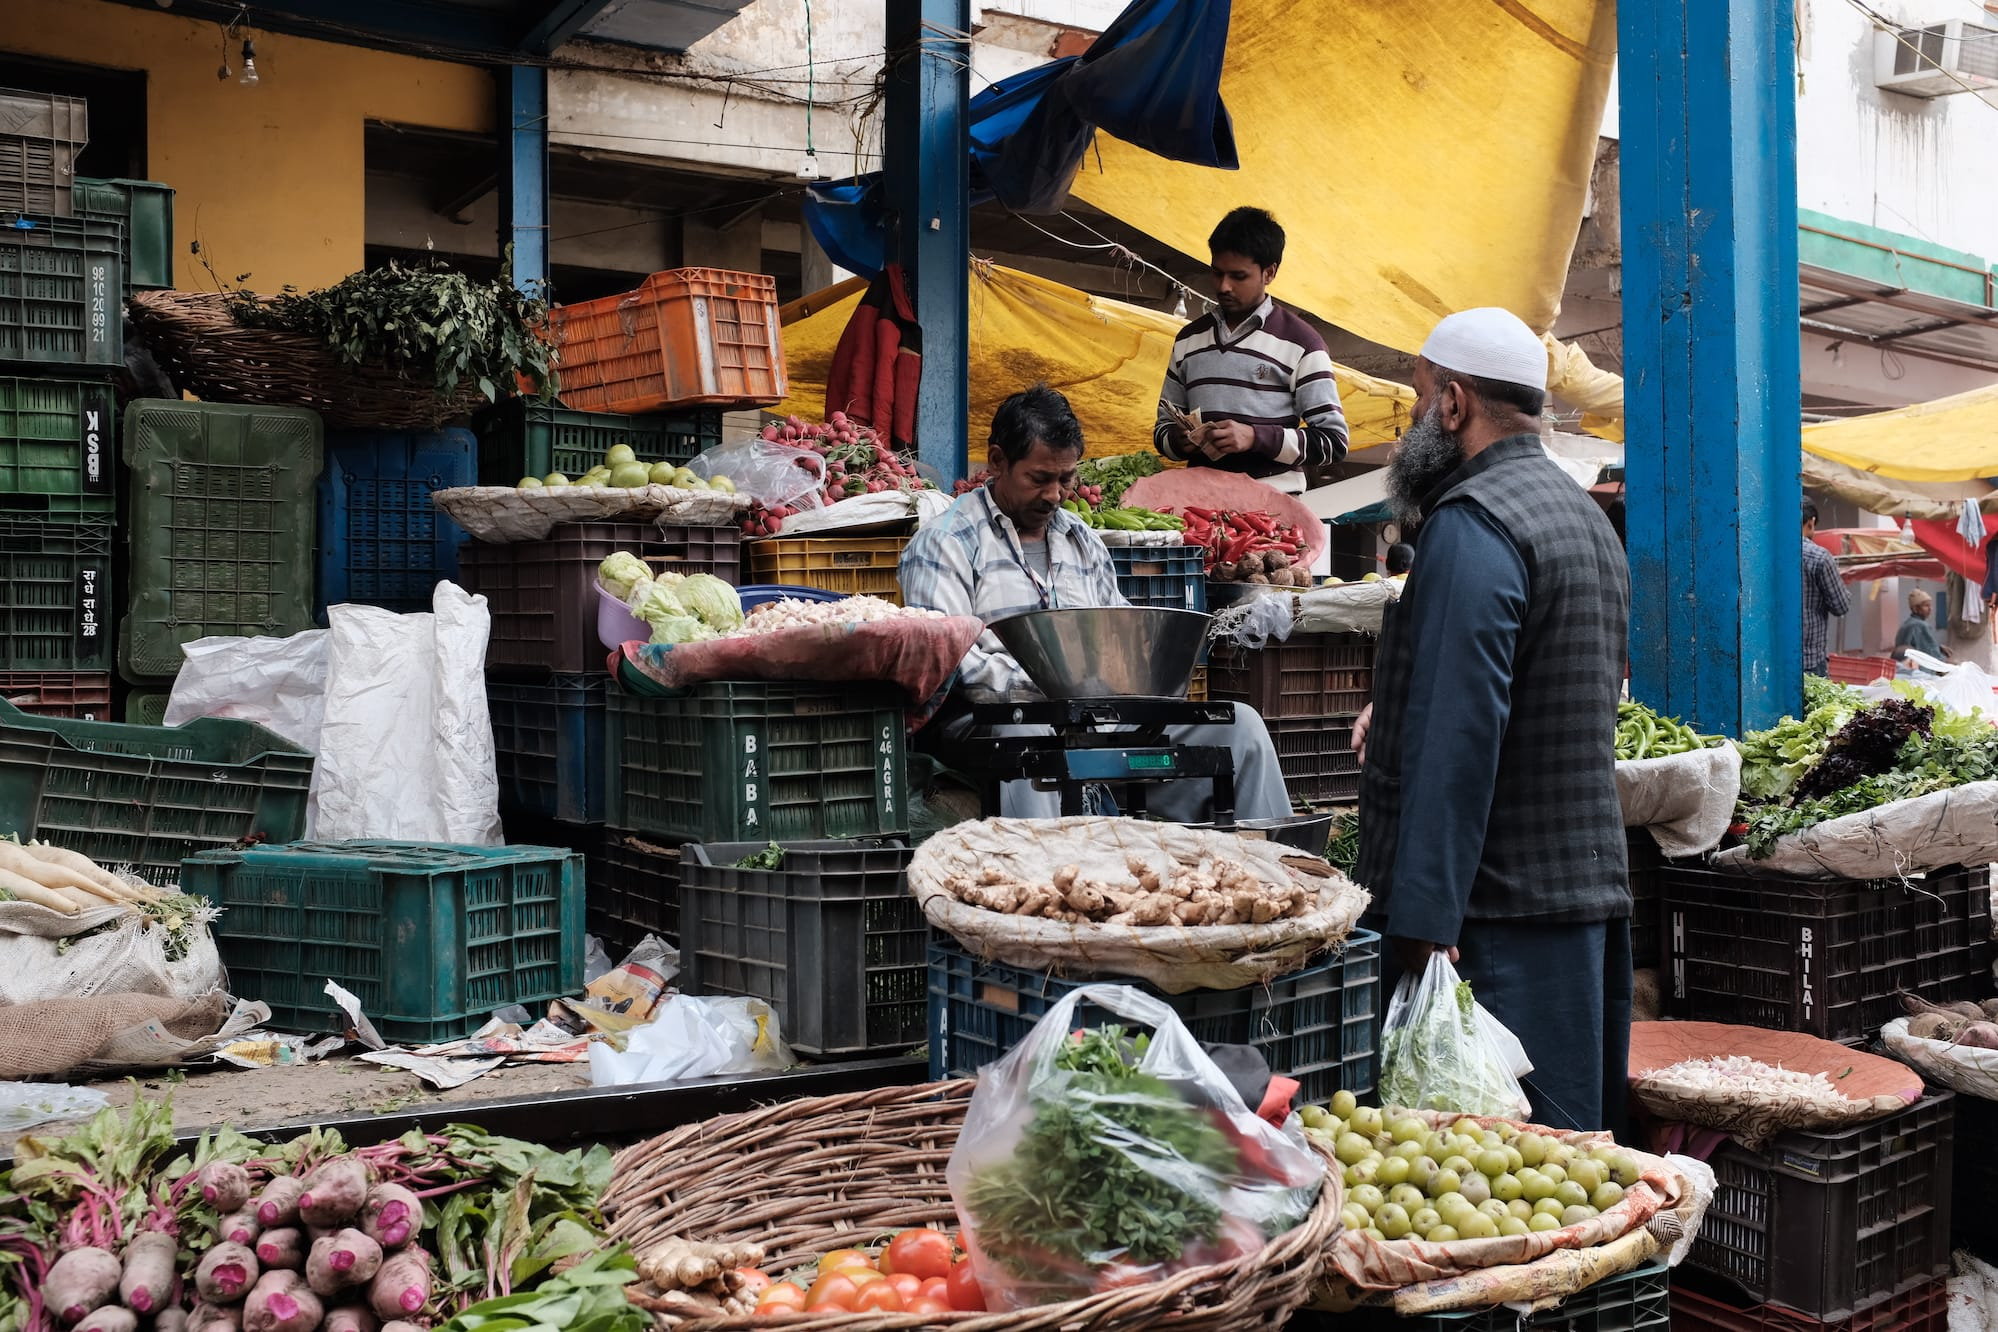 At A Vegetable Market in Old Delhi